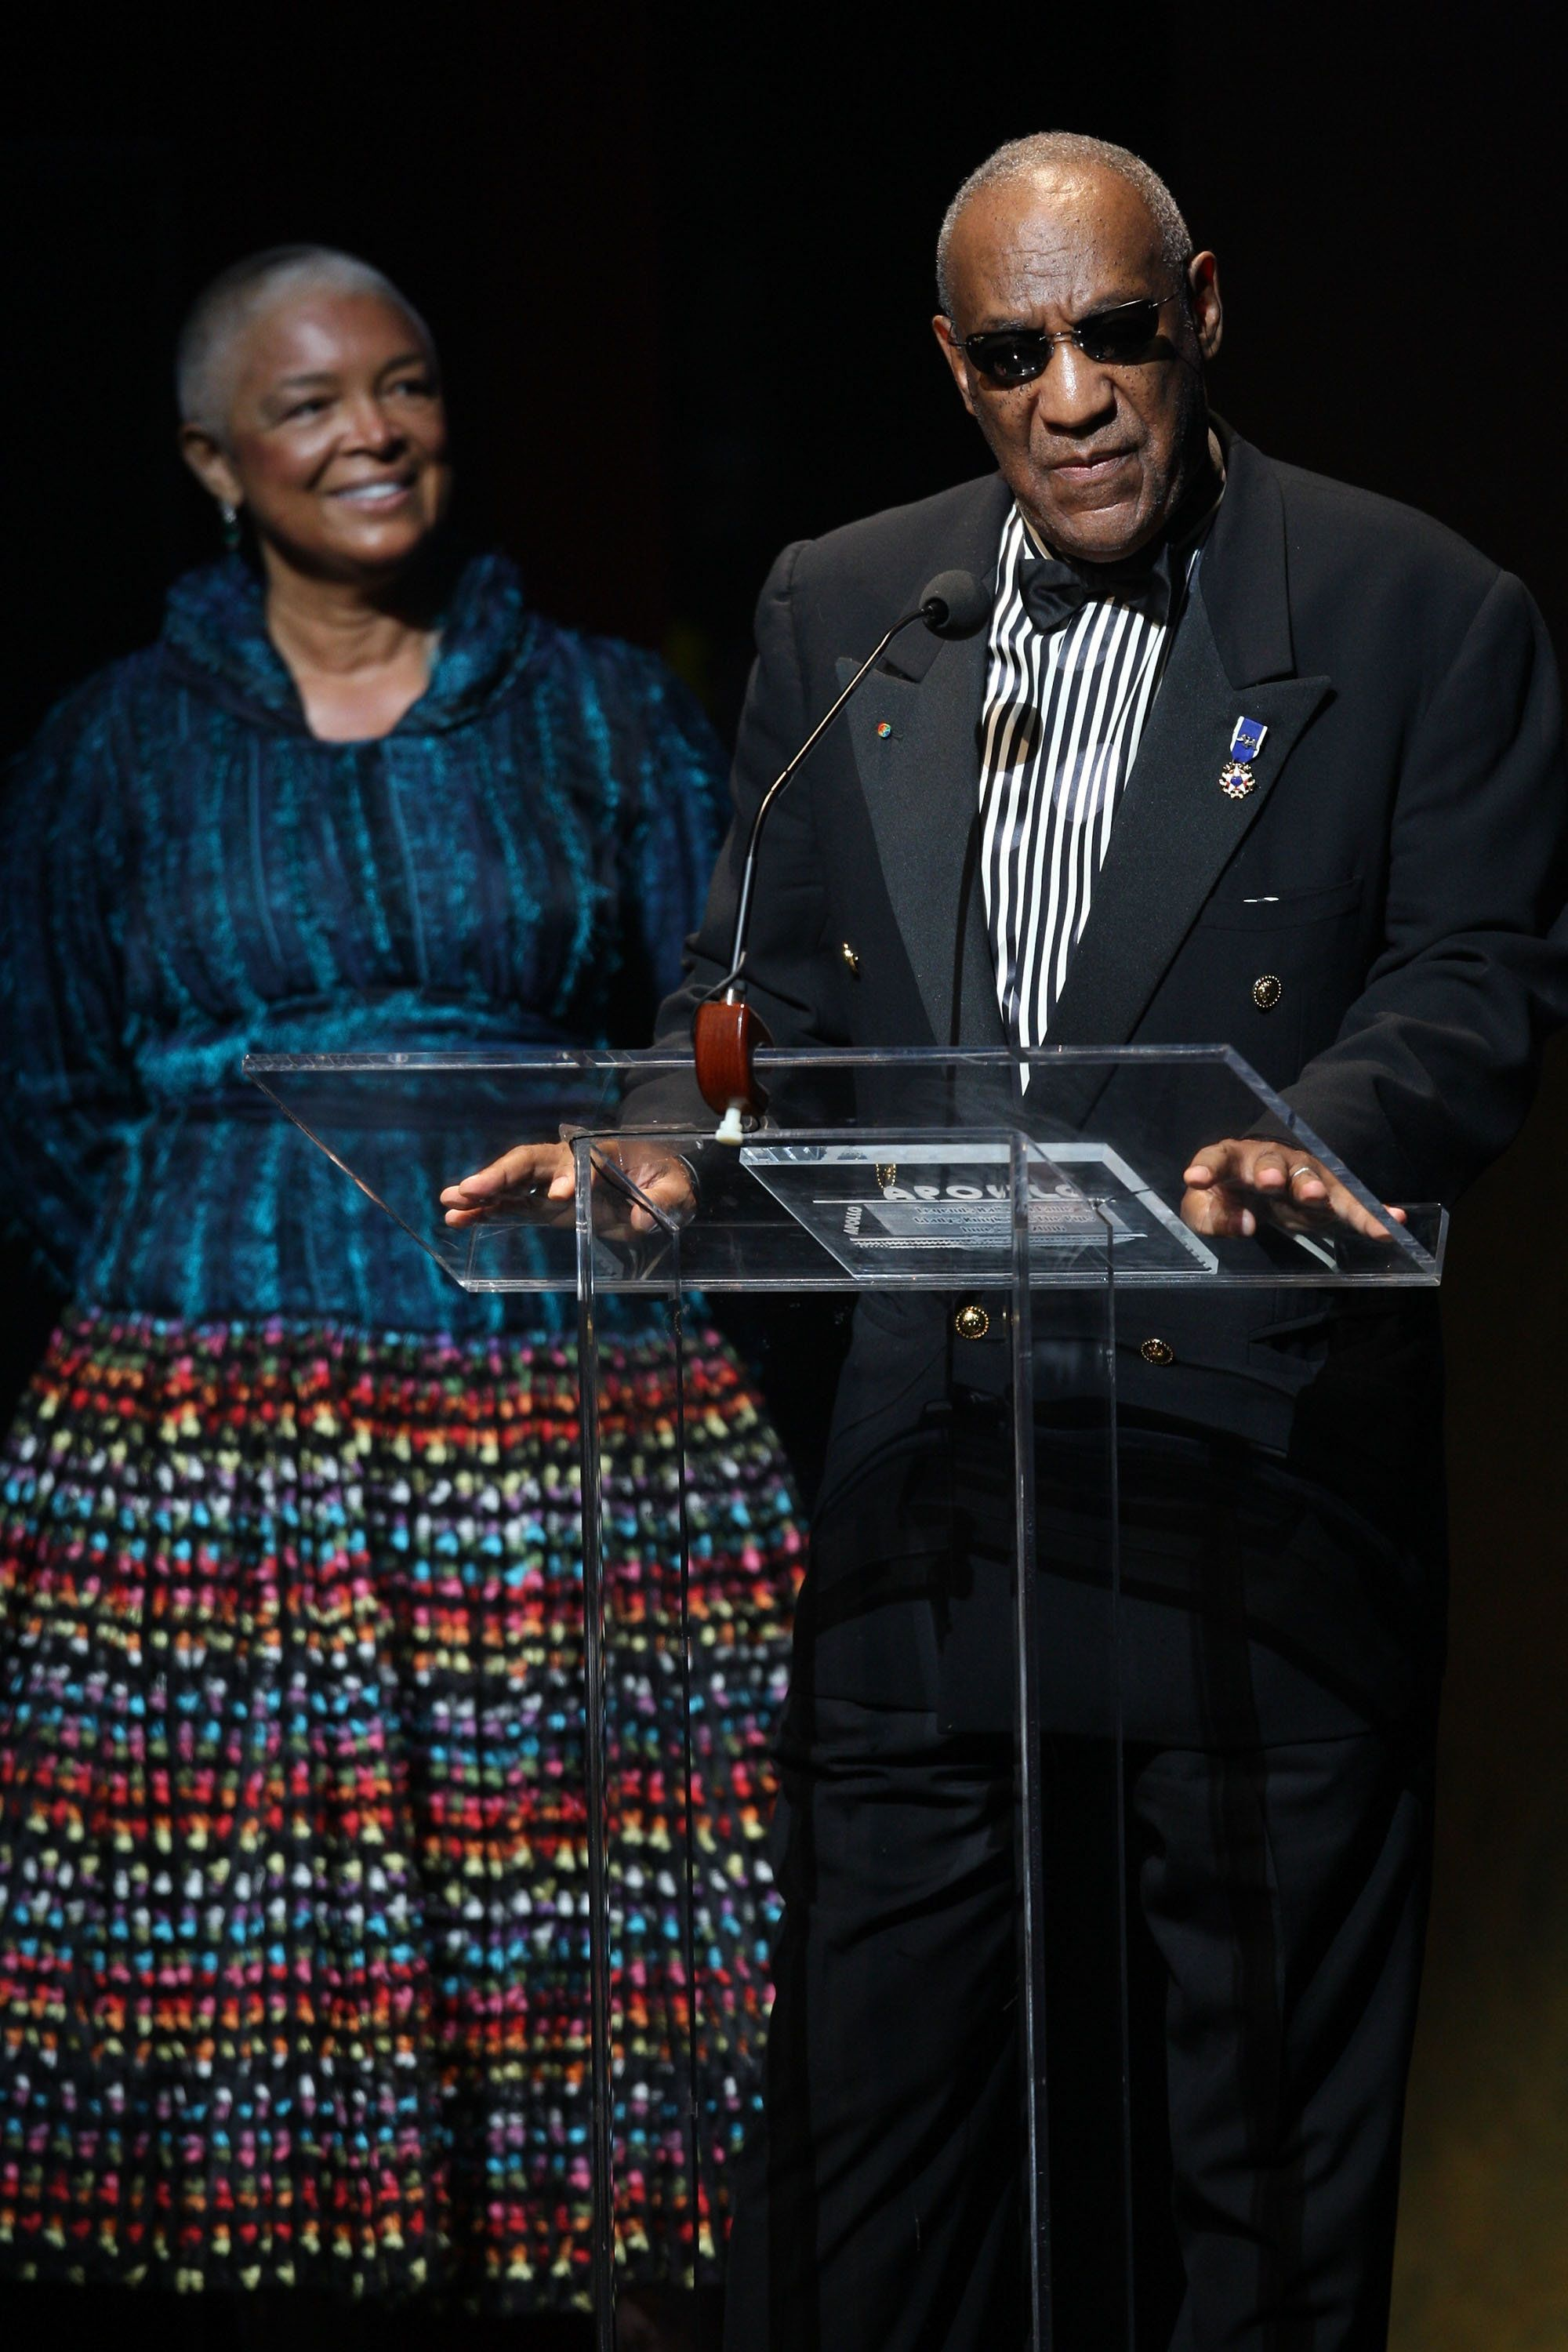 Camille Cosby, left, has been ordered to testify in a defamation suit against her husband.